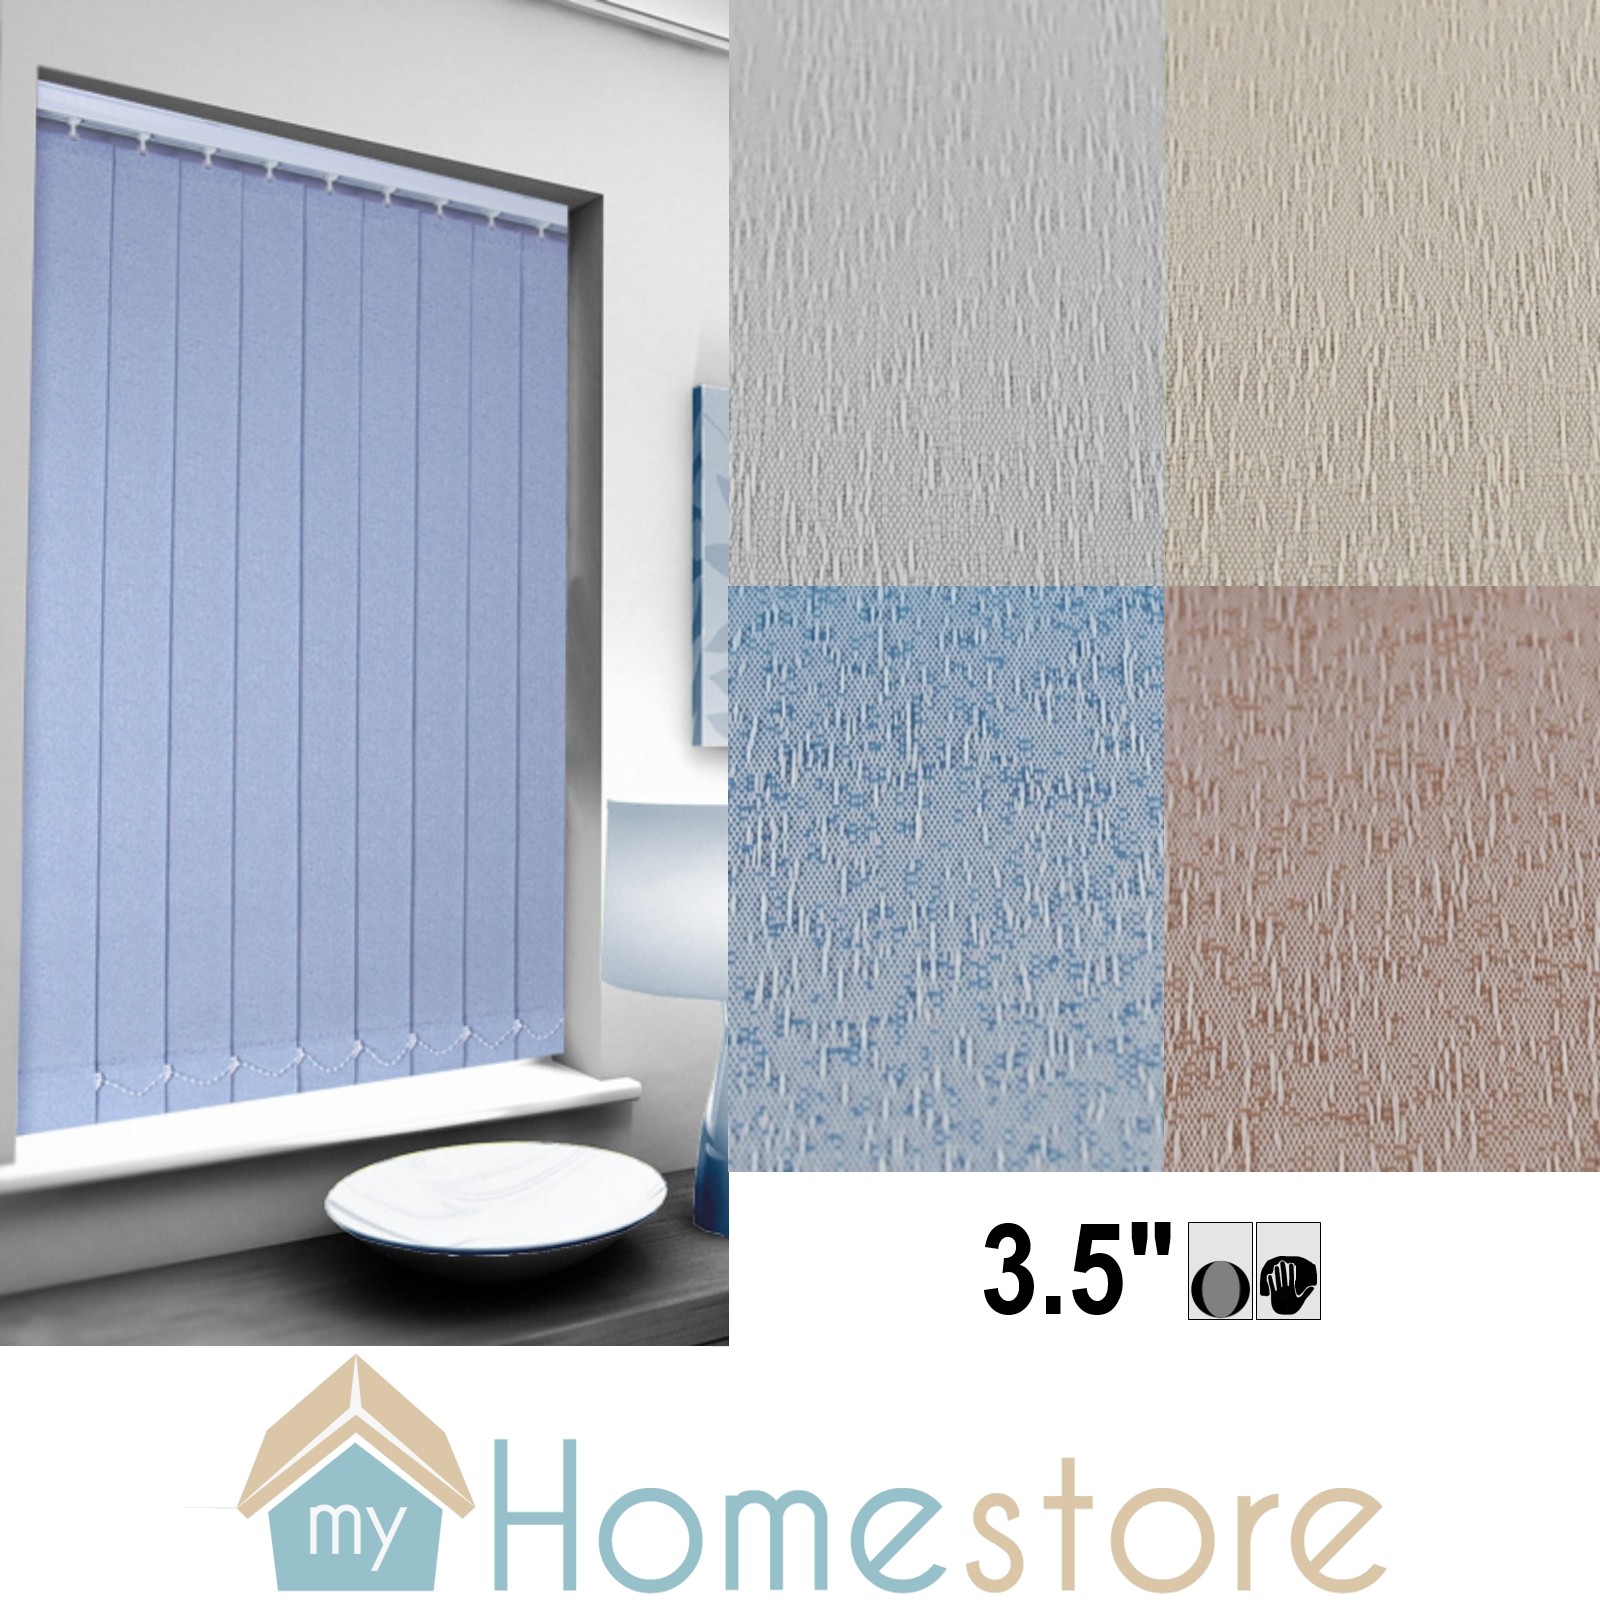 Listing For Our Latest Promotion On Vertical Blind Replacement Slats